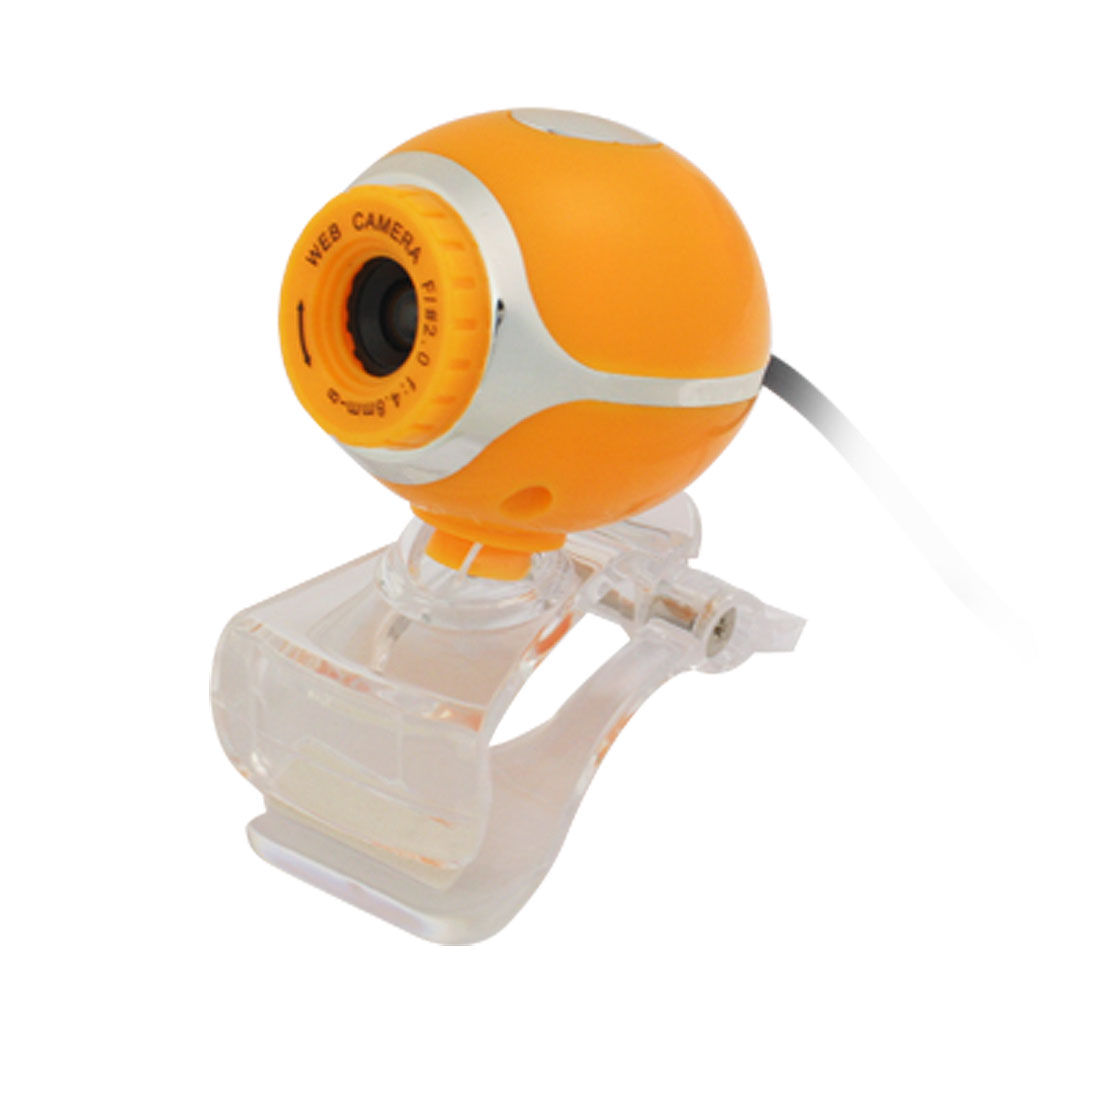 Mini Clip USB Webcam Video Camera Web Cam Orange for Laptop Notebook